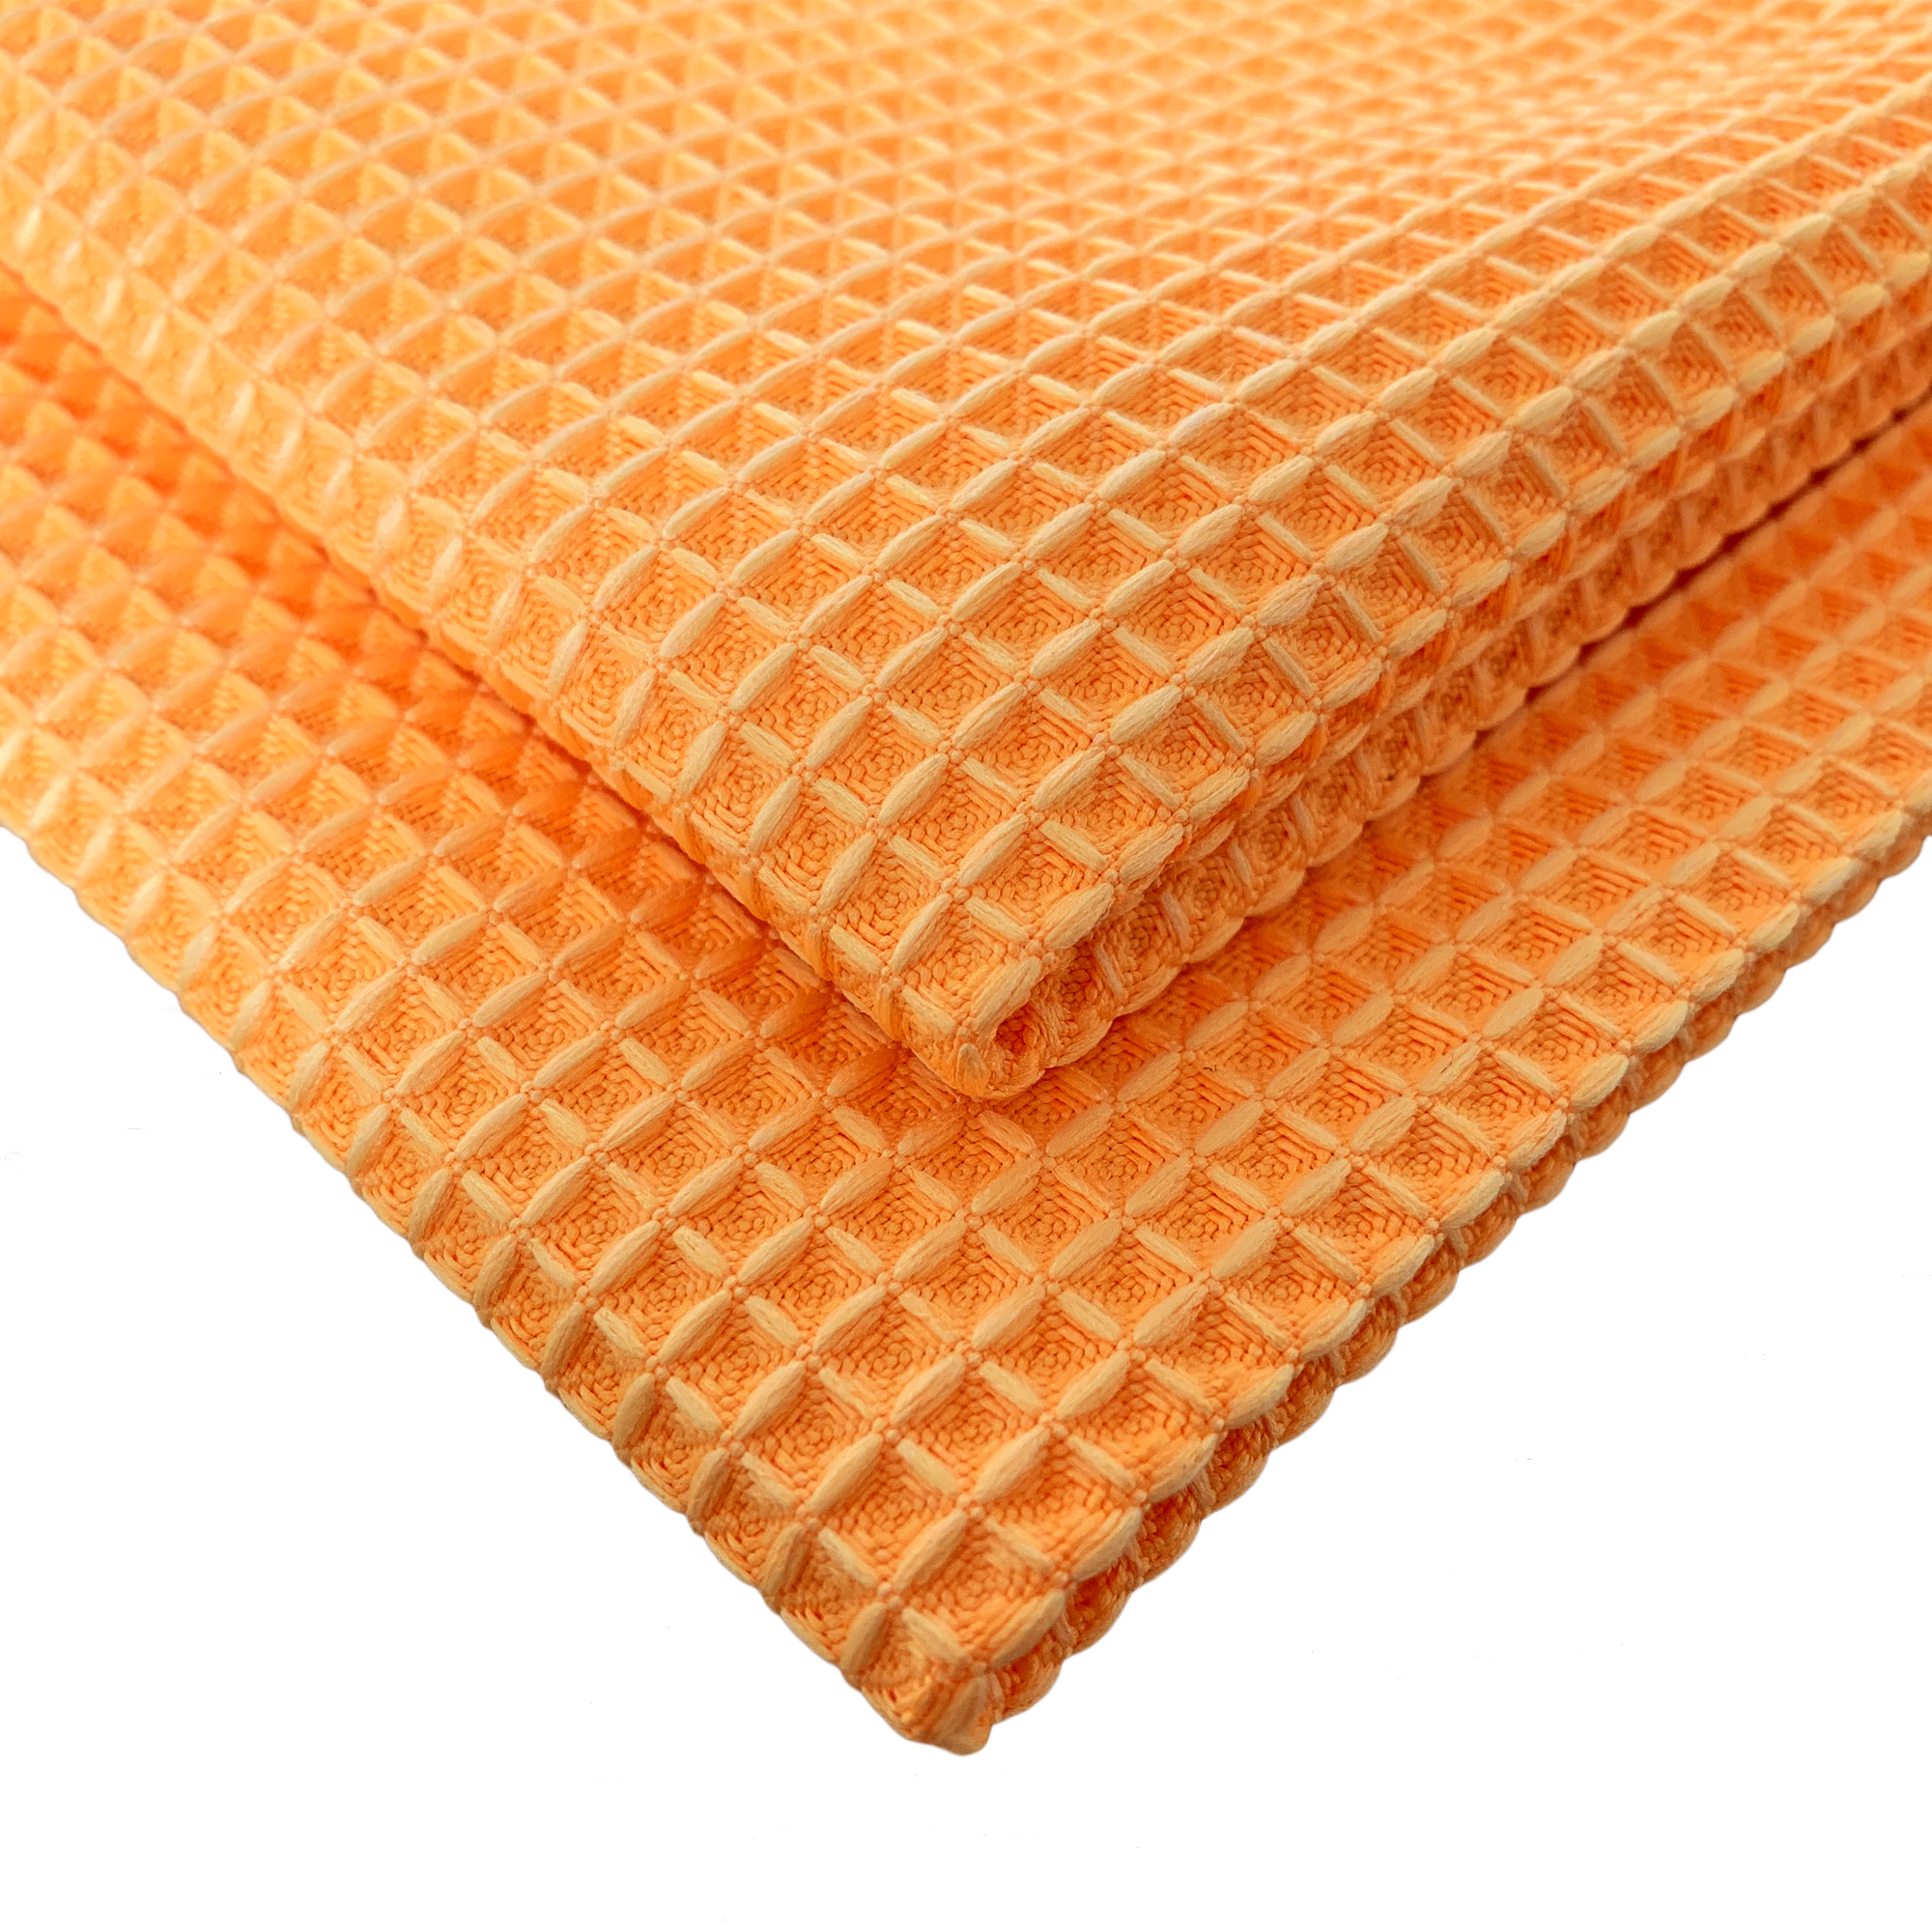 2019 New Super Absorbent Waffle Microfiber Cloth Towel For Car Auto Parts Cleaning